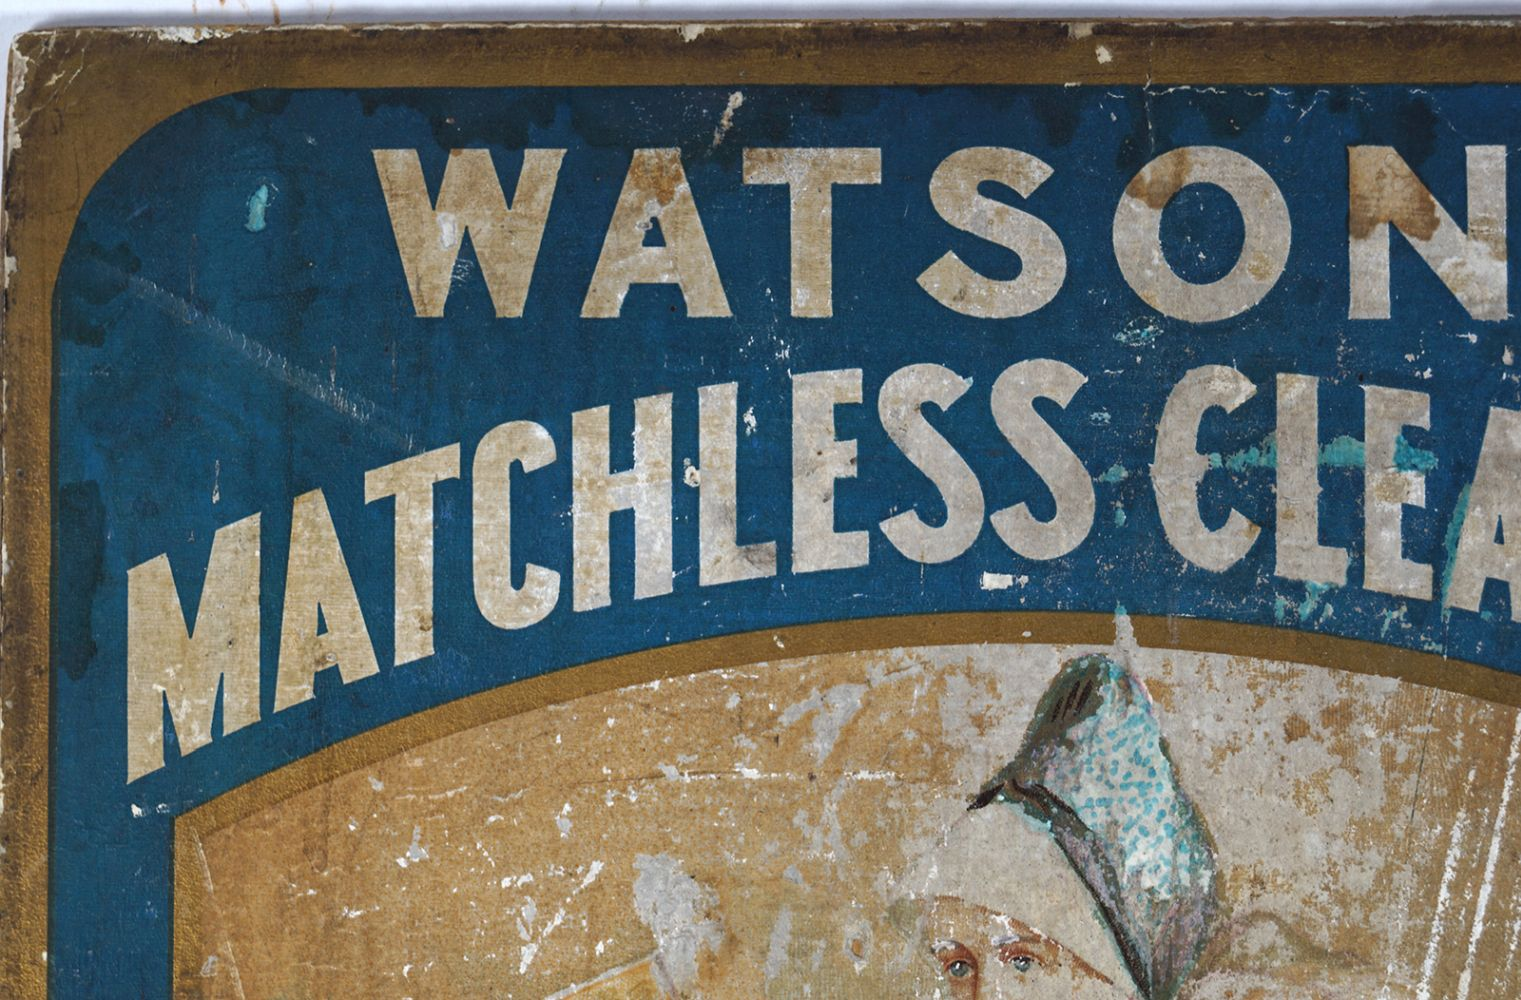 WATSON'S MATCHLESS CLEANSER VINTAGE POSTER - Image 2 of 5